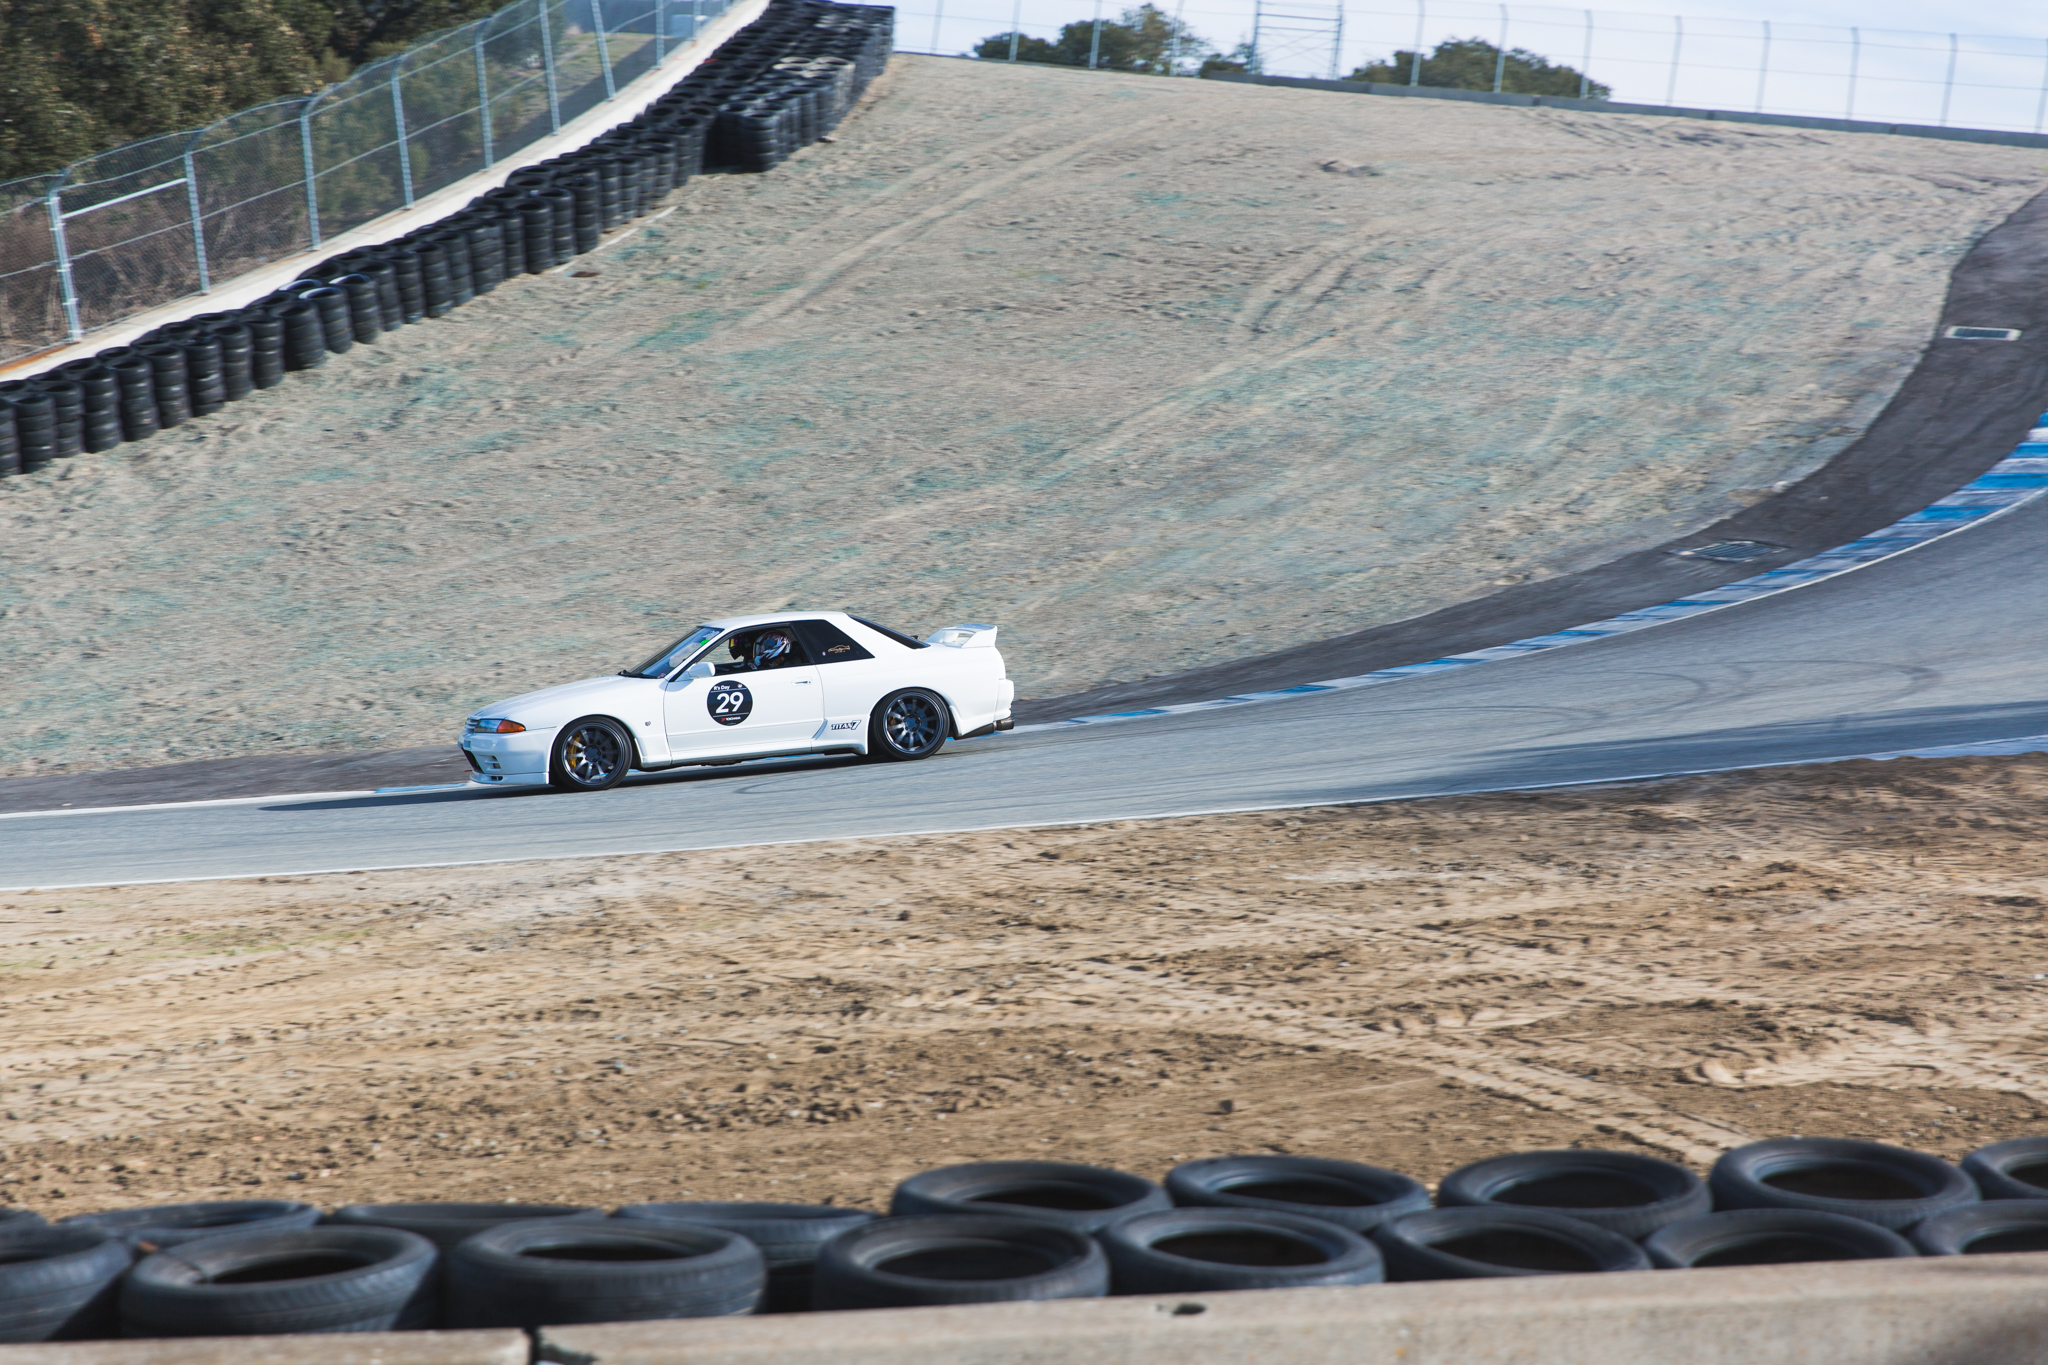 Stay_Driven_Rs_Day-53.jpg